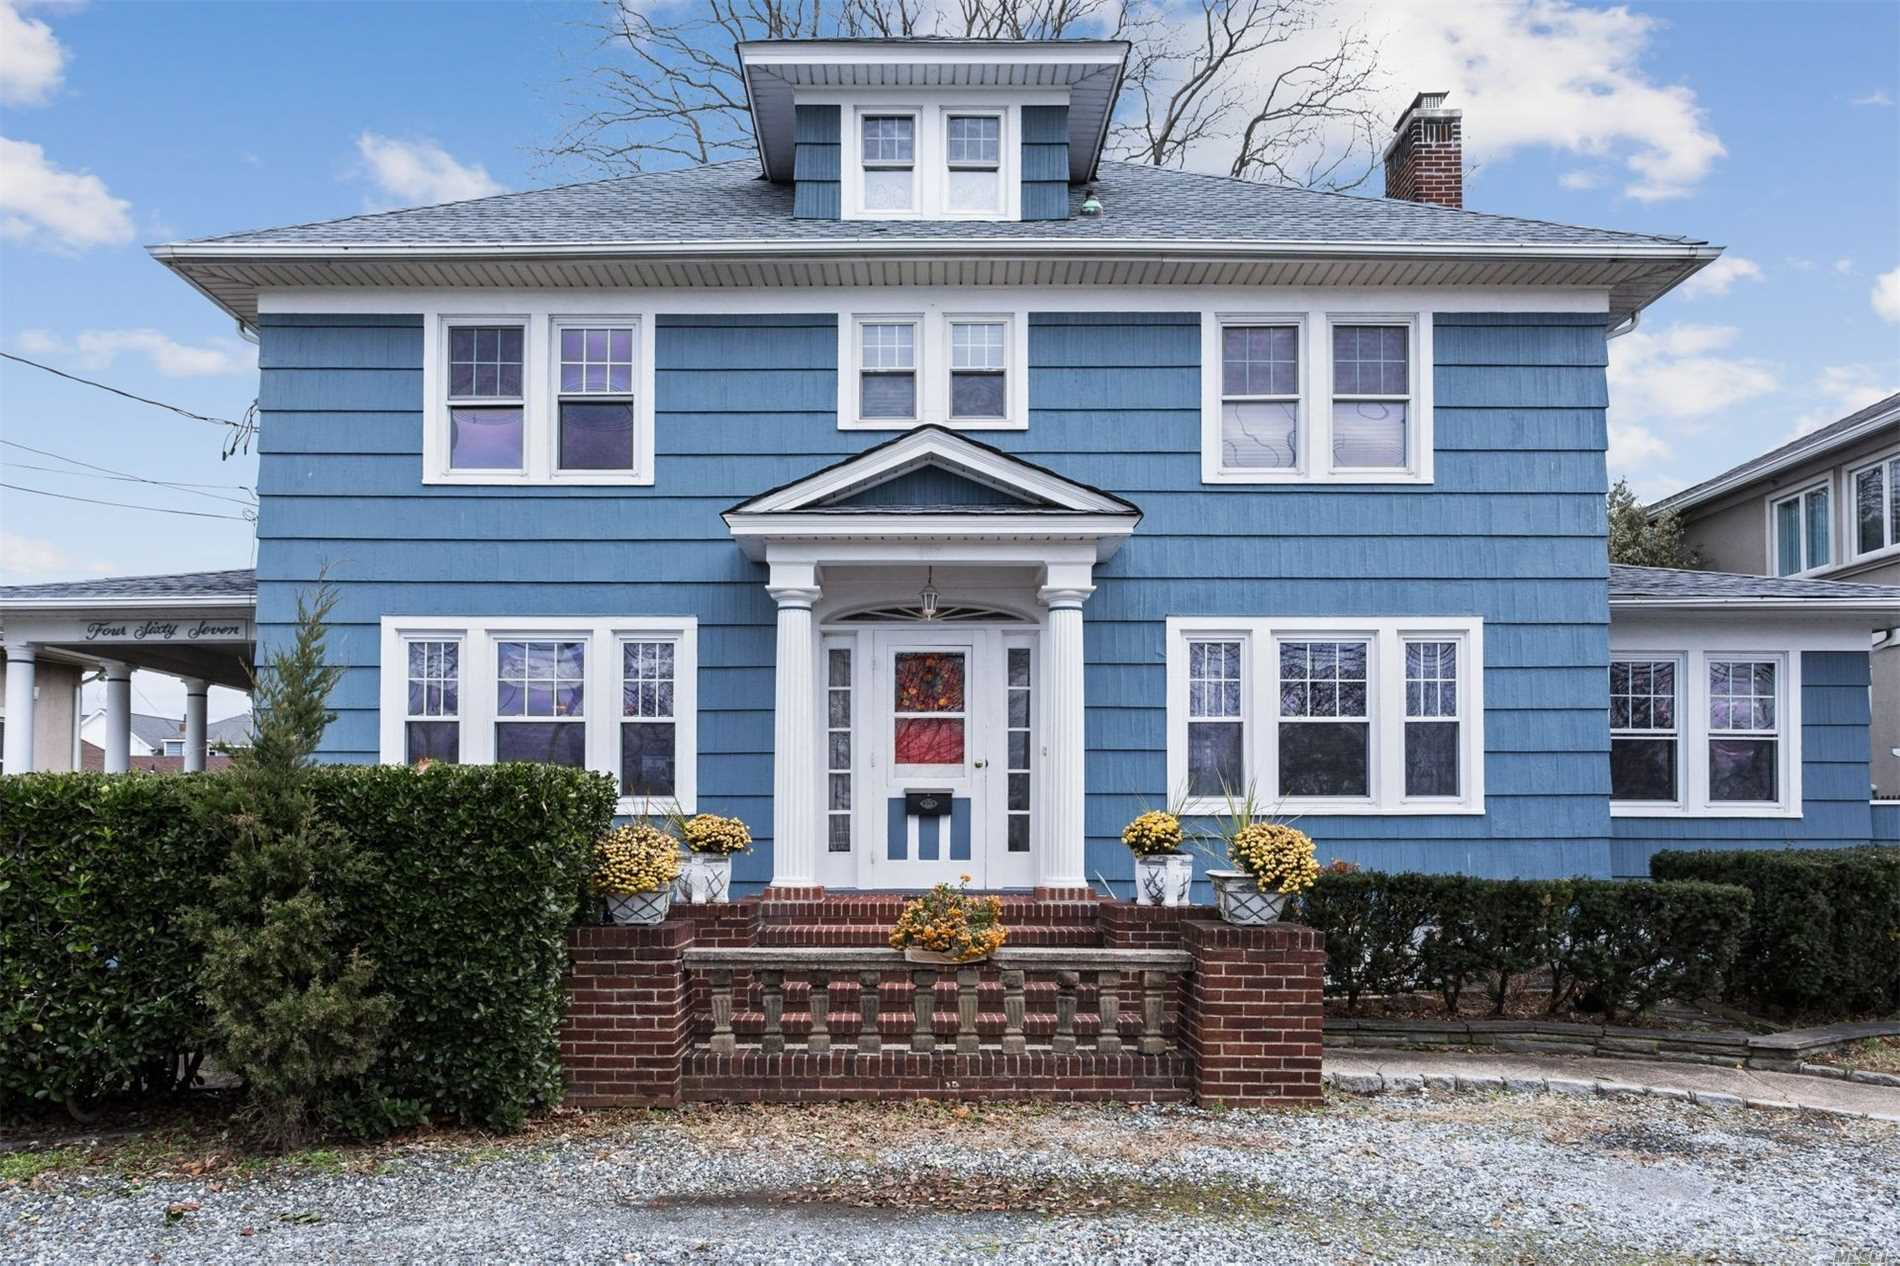 Waterfront Living On Deep Canal! Center Hall Colonial On An Oversized Property. This Home Features Hardwood Floors Throughout.  3 Bedrooms, 3 Full Baths, Livingroom With A Wood Burning Fireplace 63 Feet Of Marine Bulkhead A Must See!